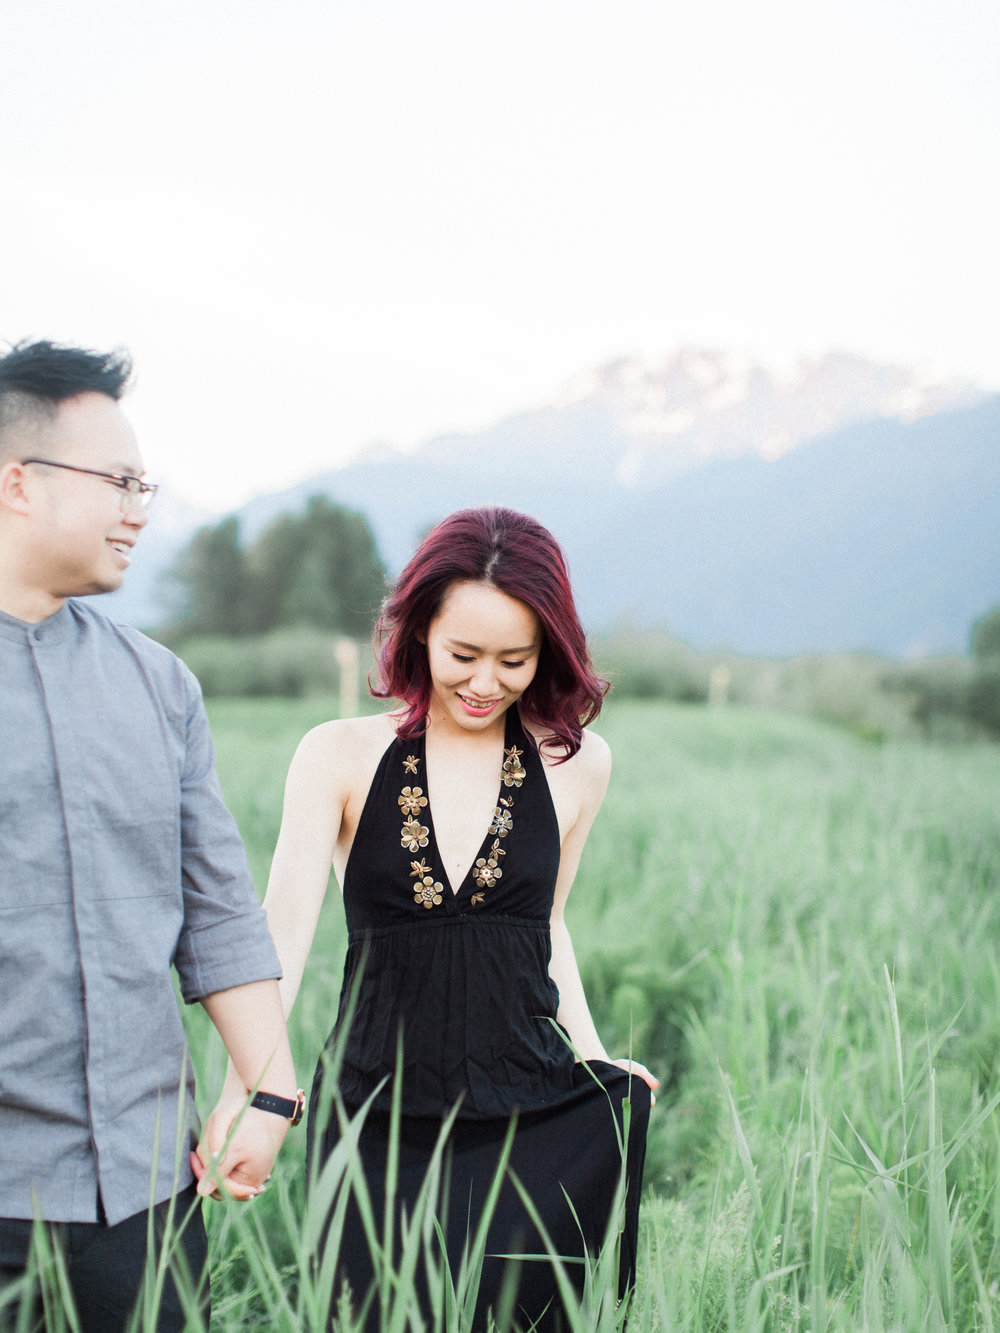 20170528Maple_Ridge_Engagement_Mary_Marco_Prewedding-50 copy.jpg